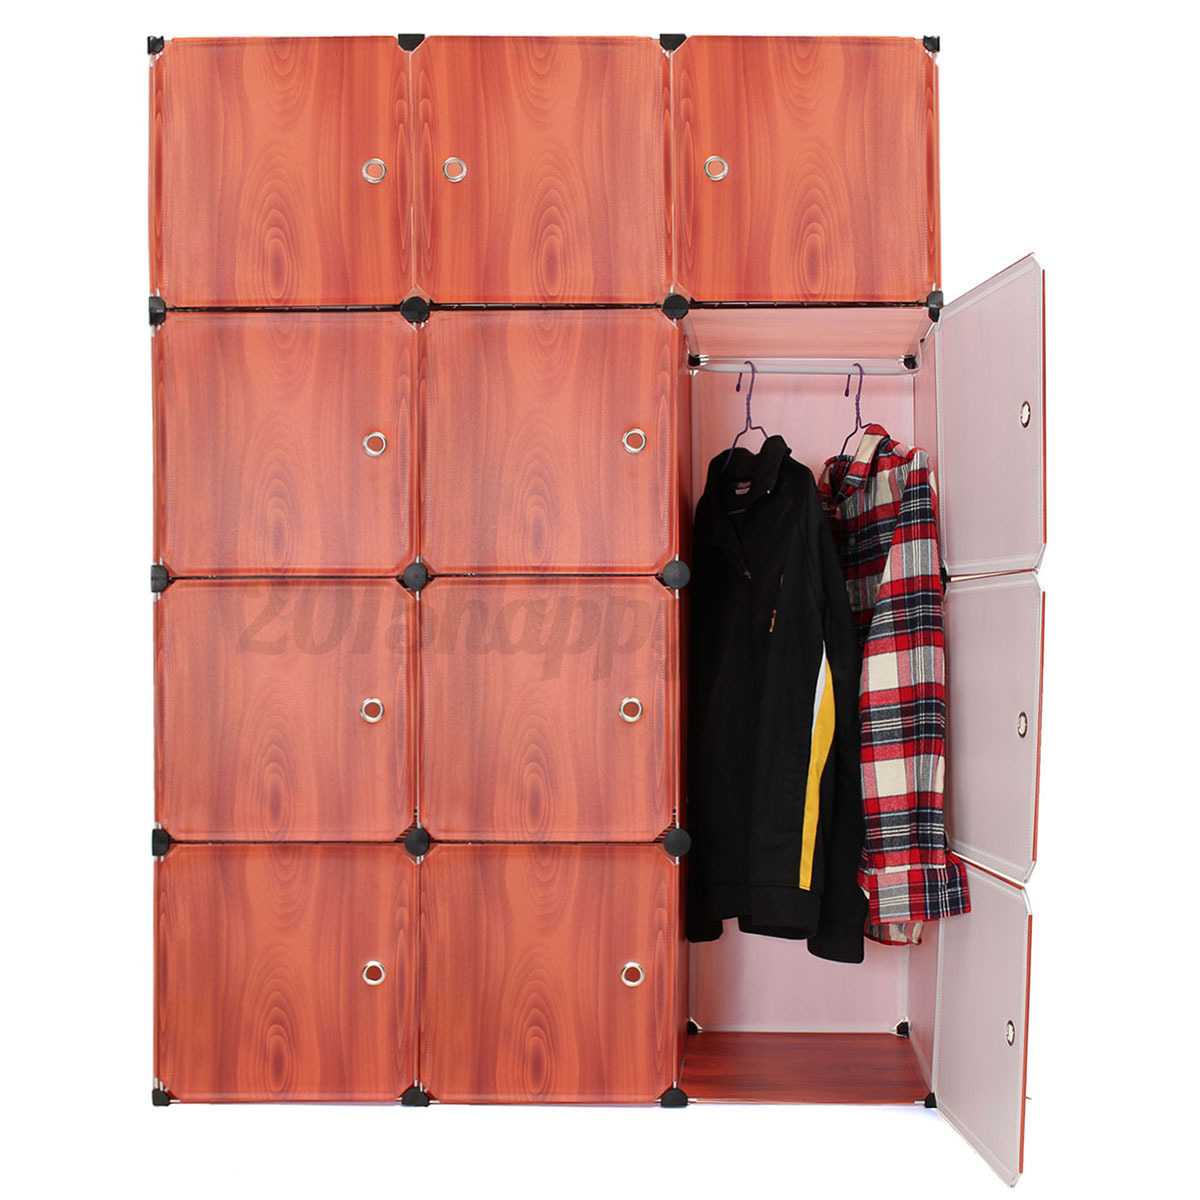 Zelt Cube Wardrobe : Cube portable clothes closet organizer wardrobe storage